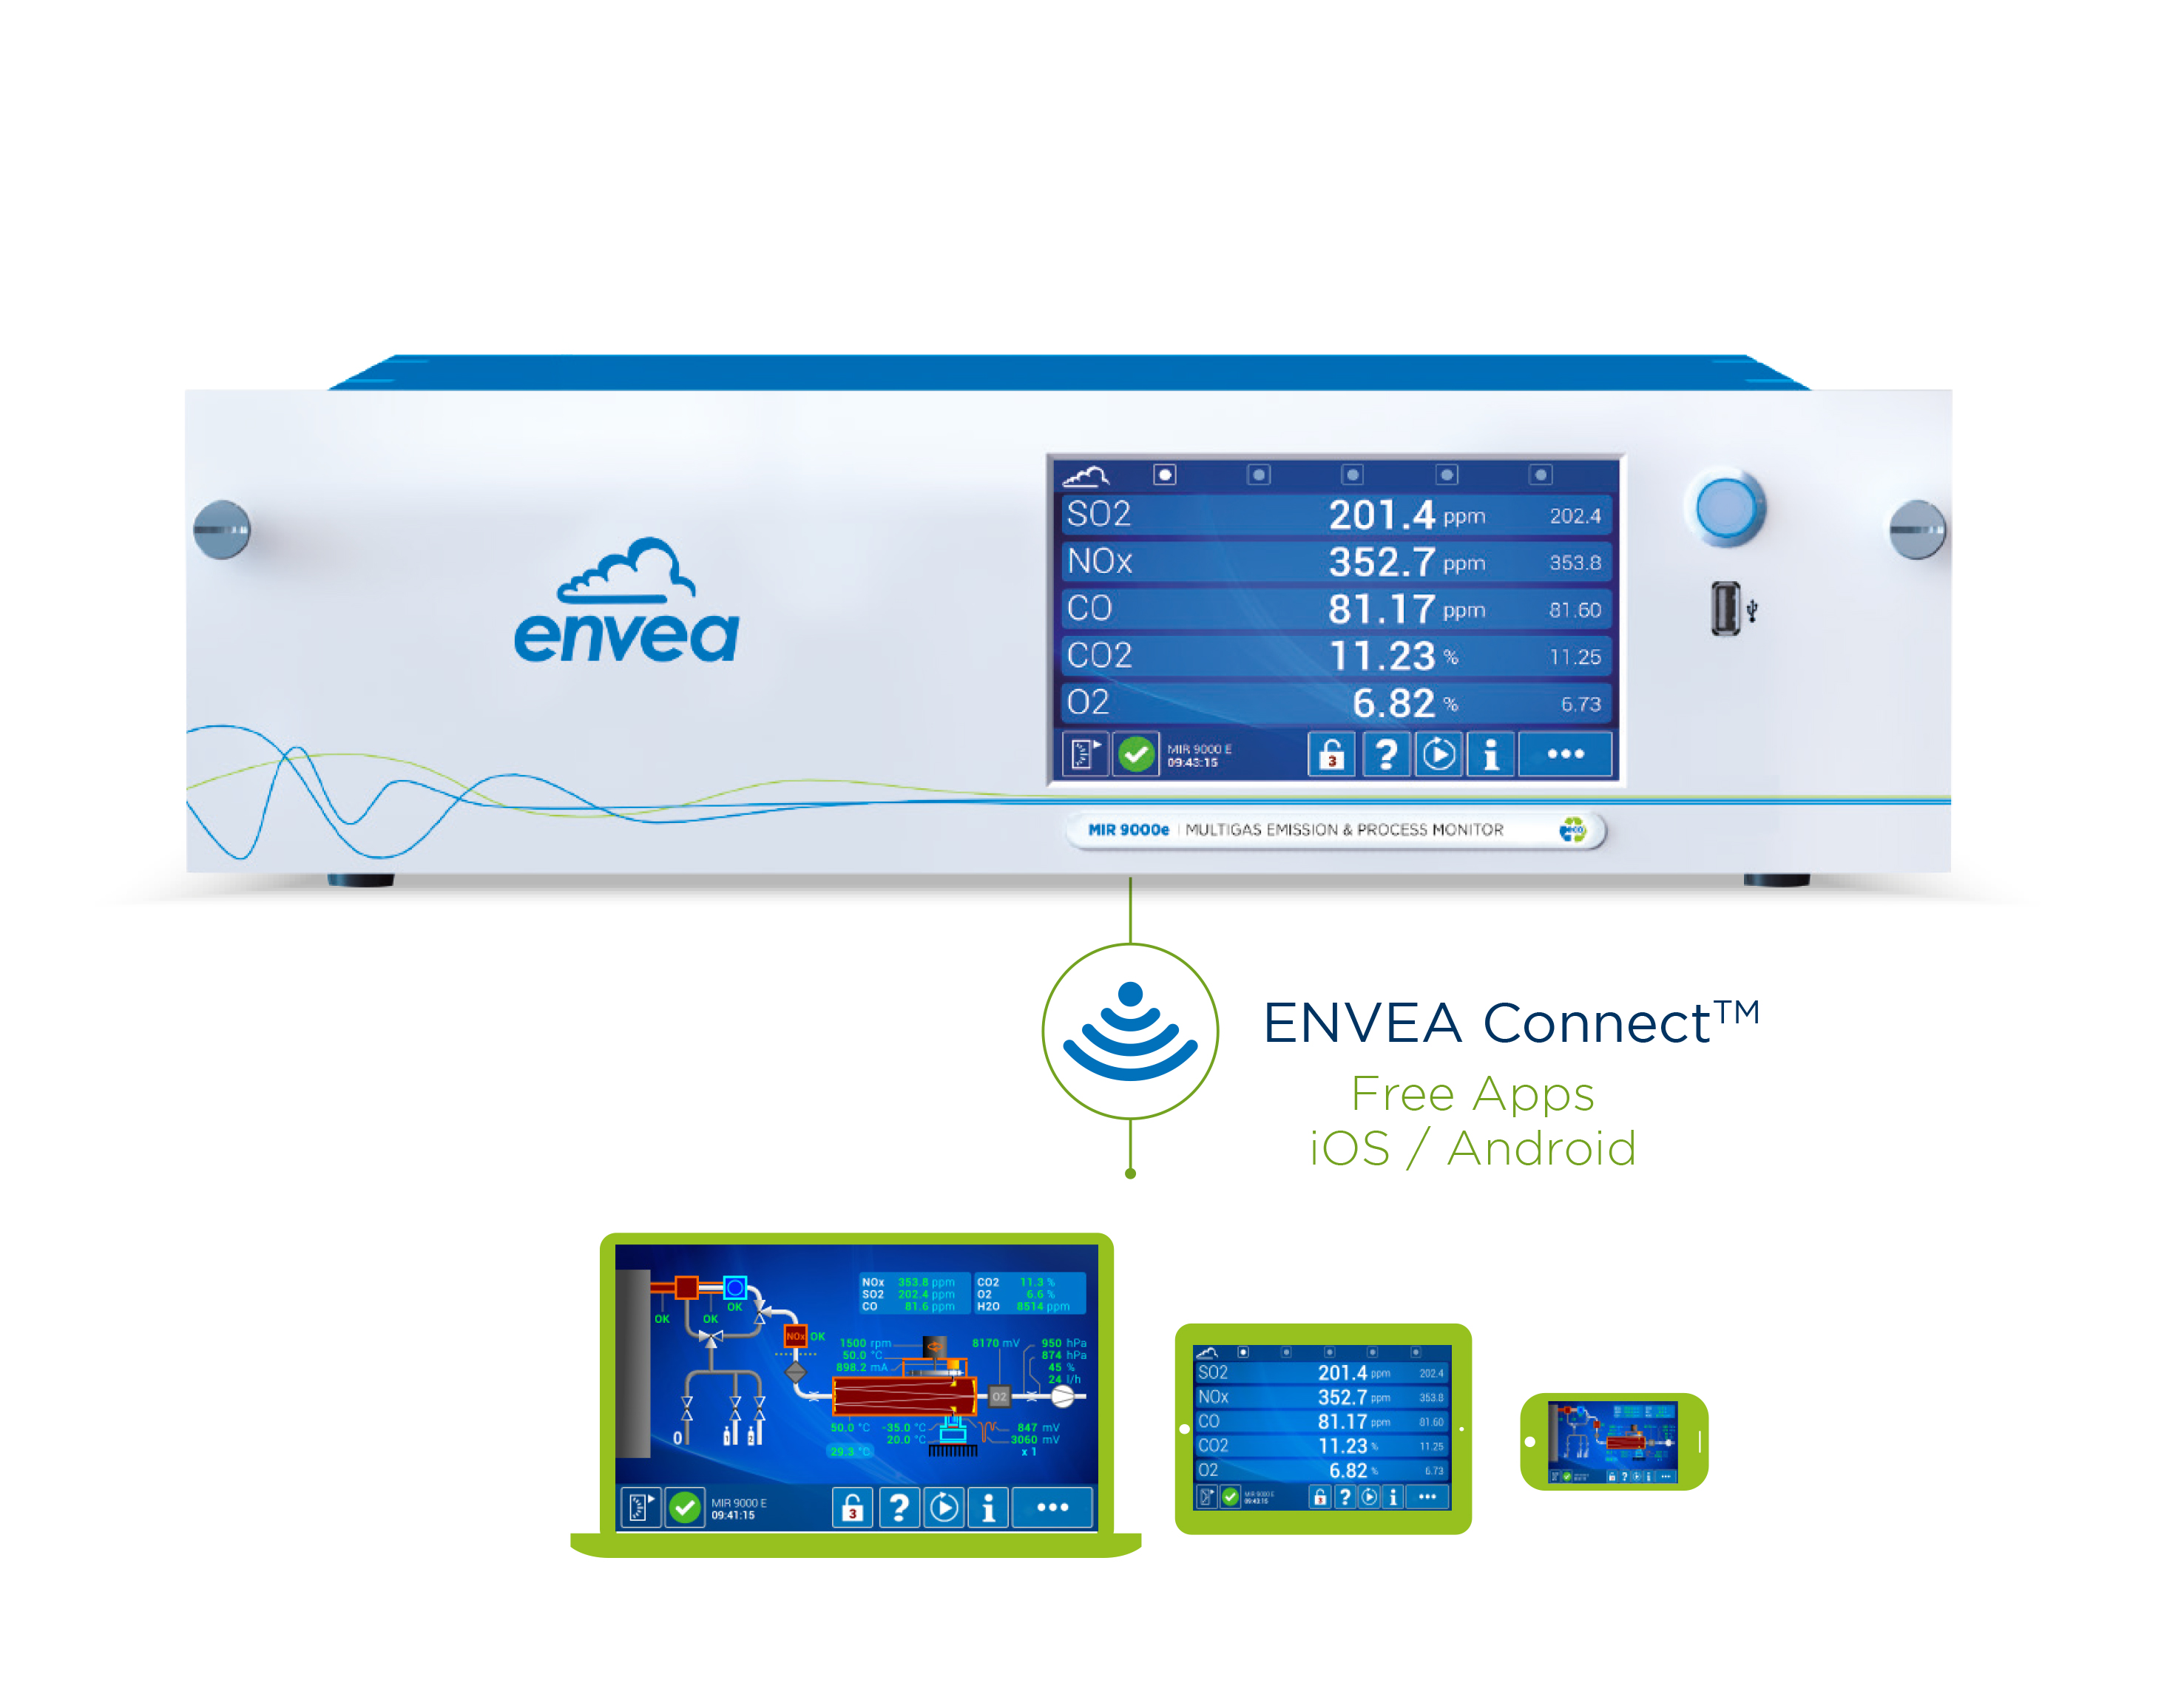 ENVEA launches its NDIR-GFC multi-gas analyzer MIR 9000e-1